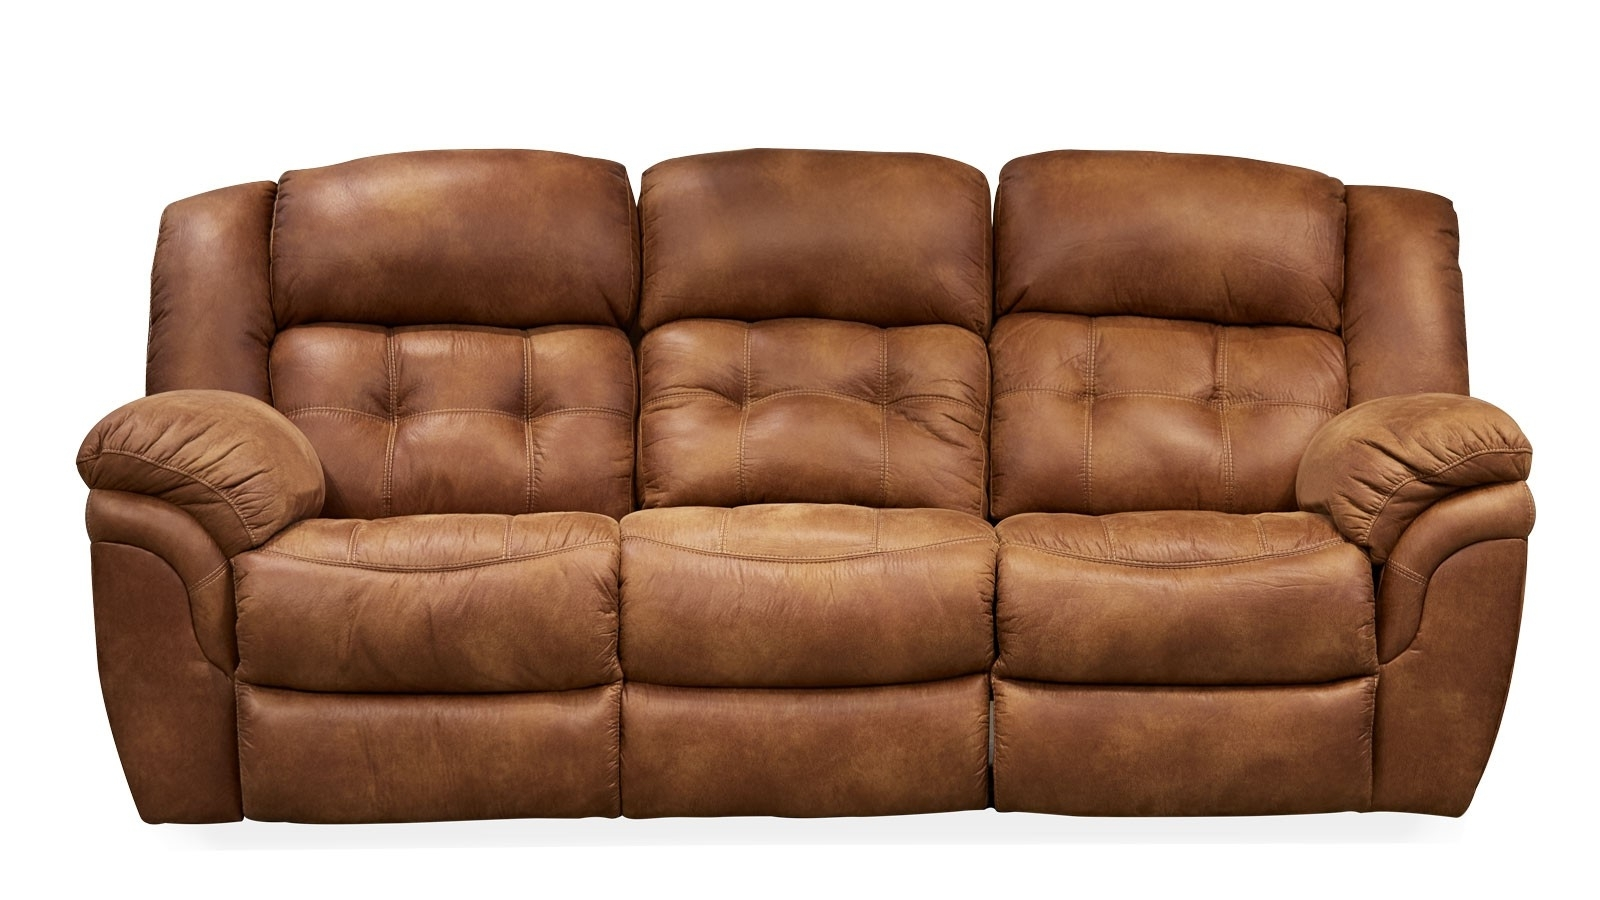 Most Recently Released Sofas And Loveseats With Regard To Reclining Sofas, Loveseats & Sectionals (View 20 of 20)